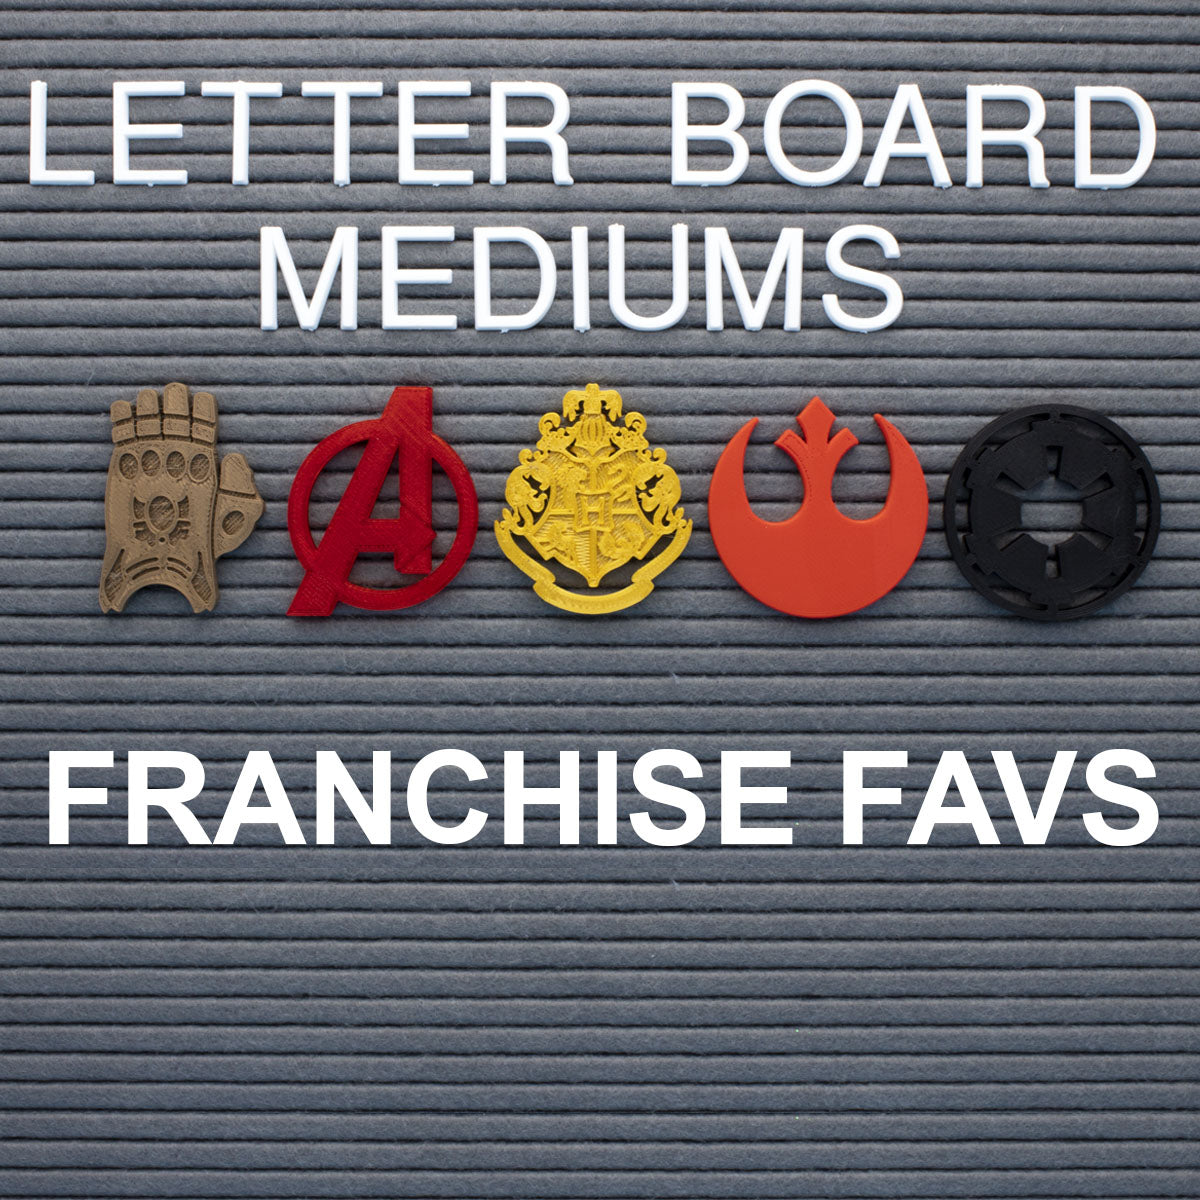 Franchise Favs Letter Board Mediums